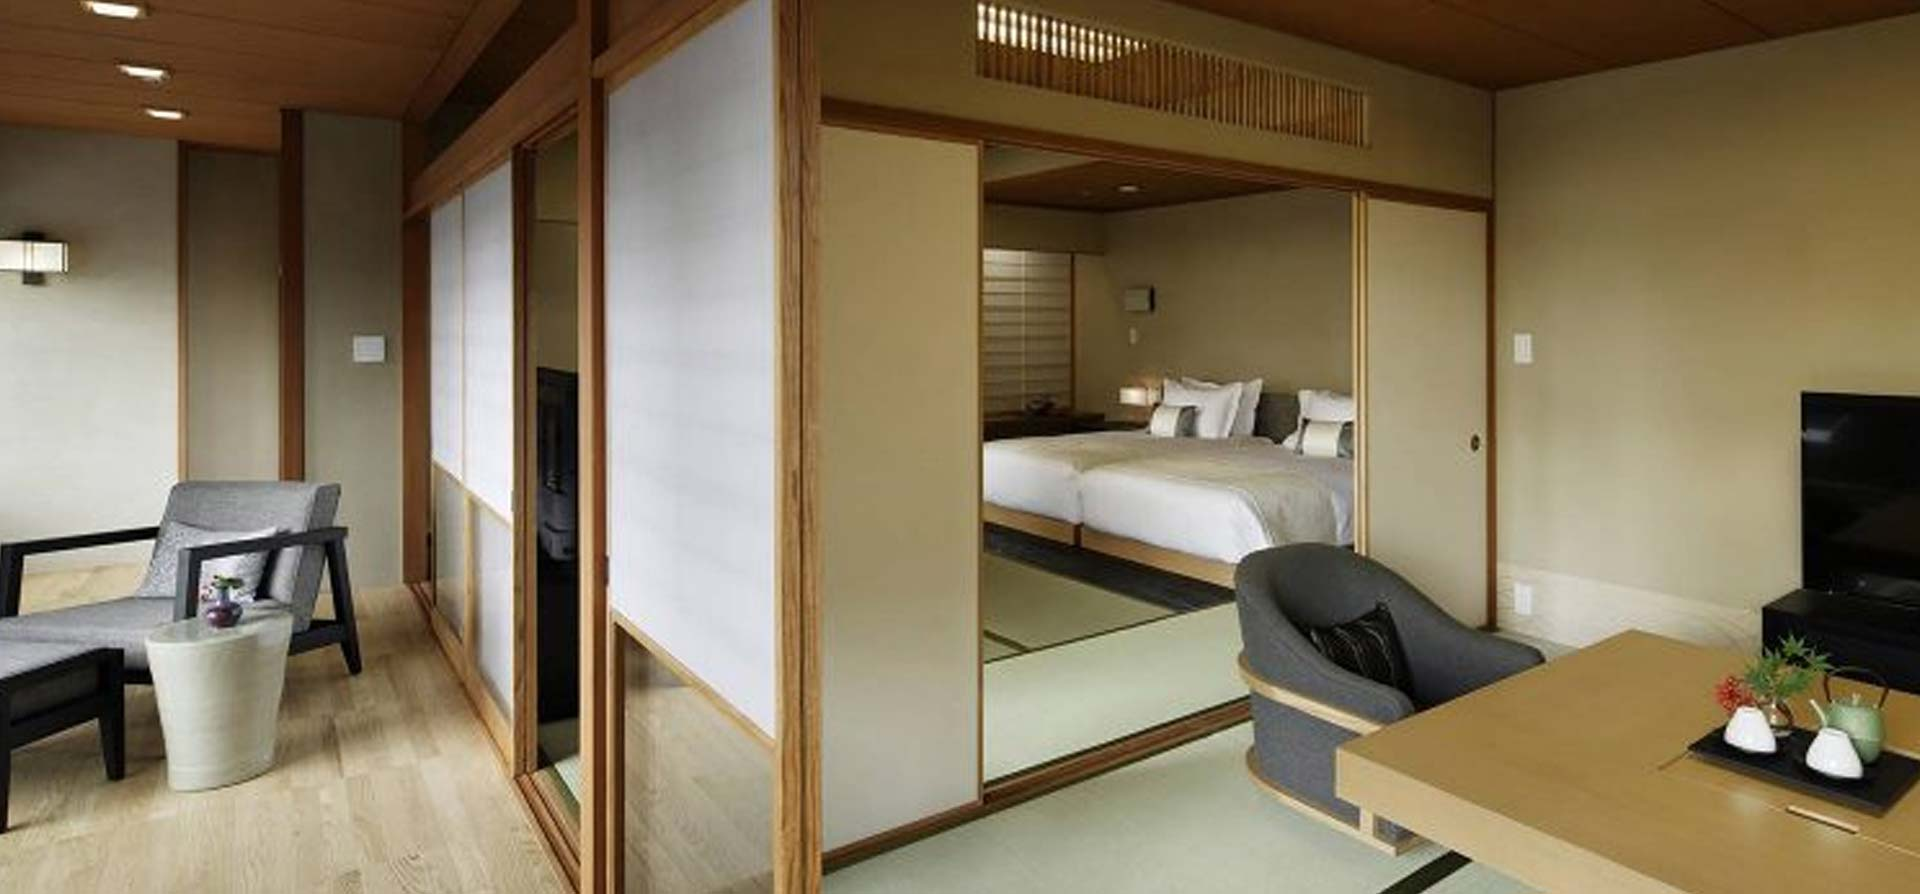 Takanawa Hanakohro (Grand Prince Hotel Takanawa Annex) A special time and place with Japanese hospitality.